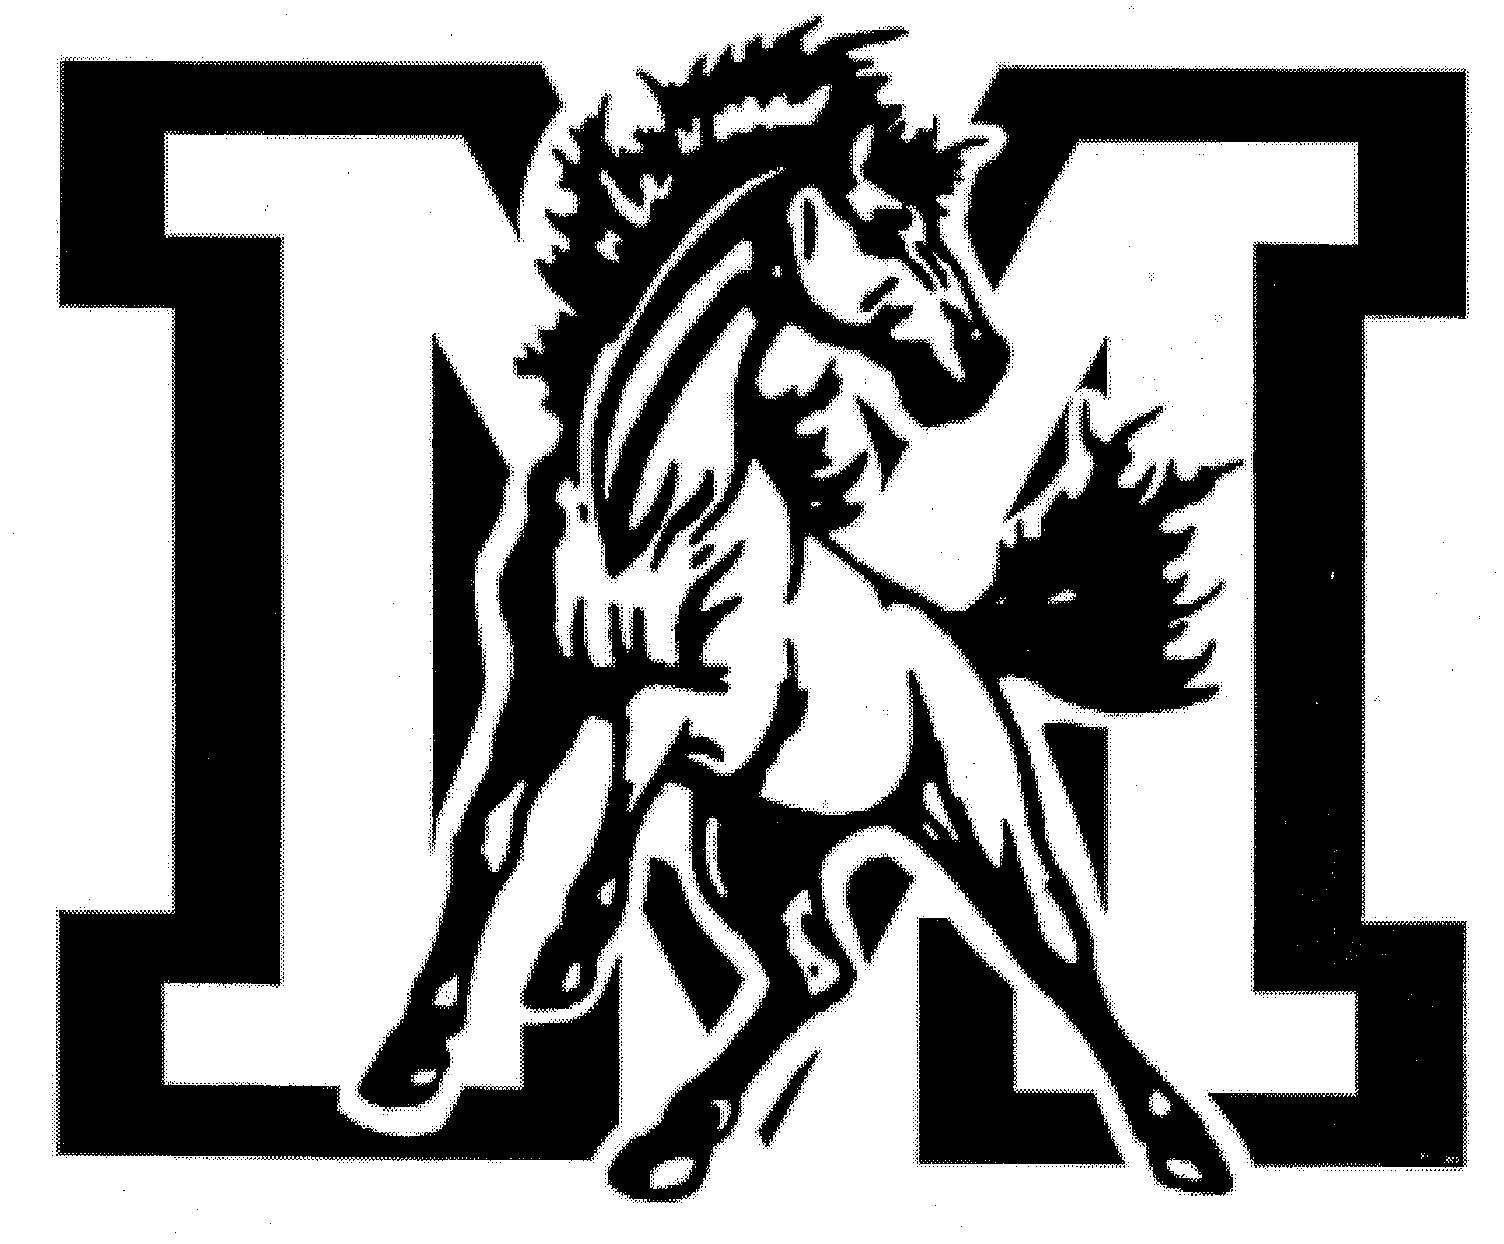 Mustang clipart mustang horse. Free cliparts download clip